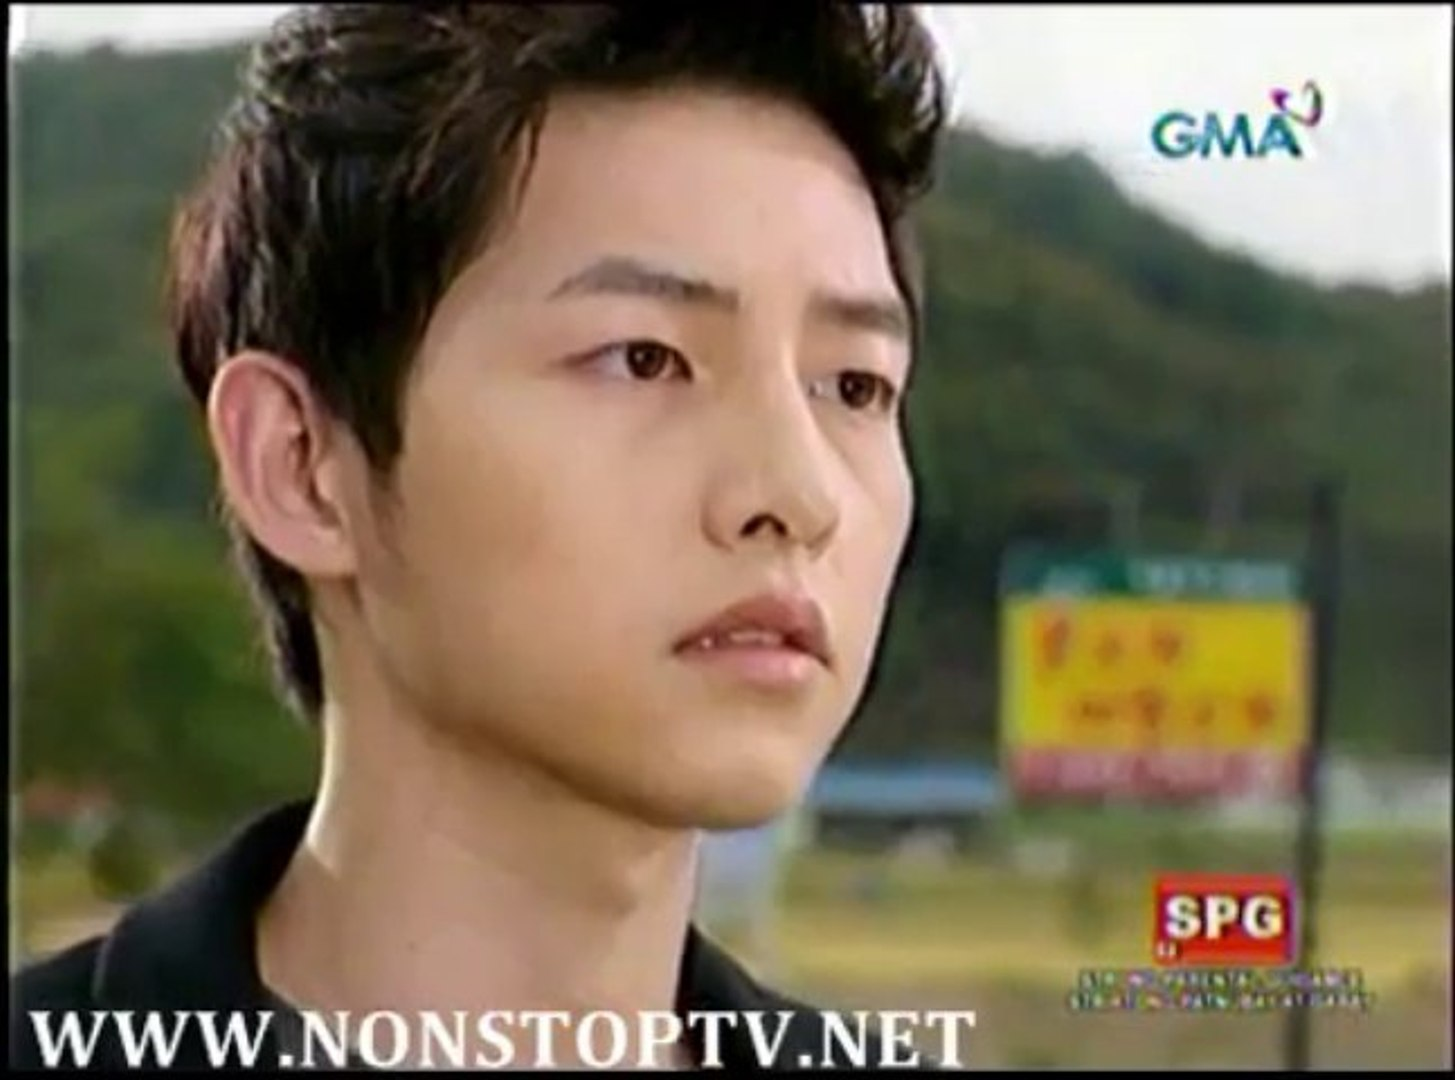 The Innocent Man: September 12, 2013 Episode